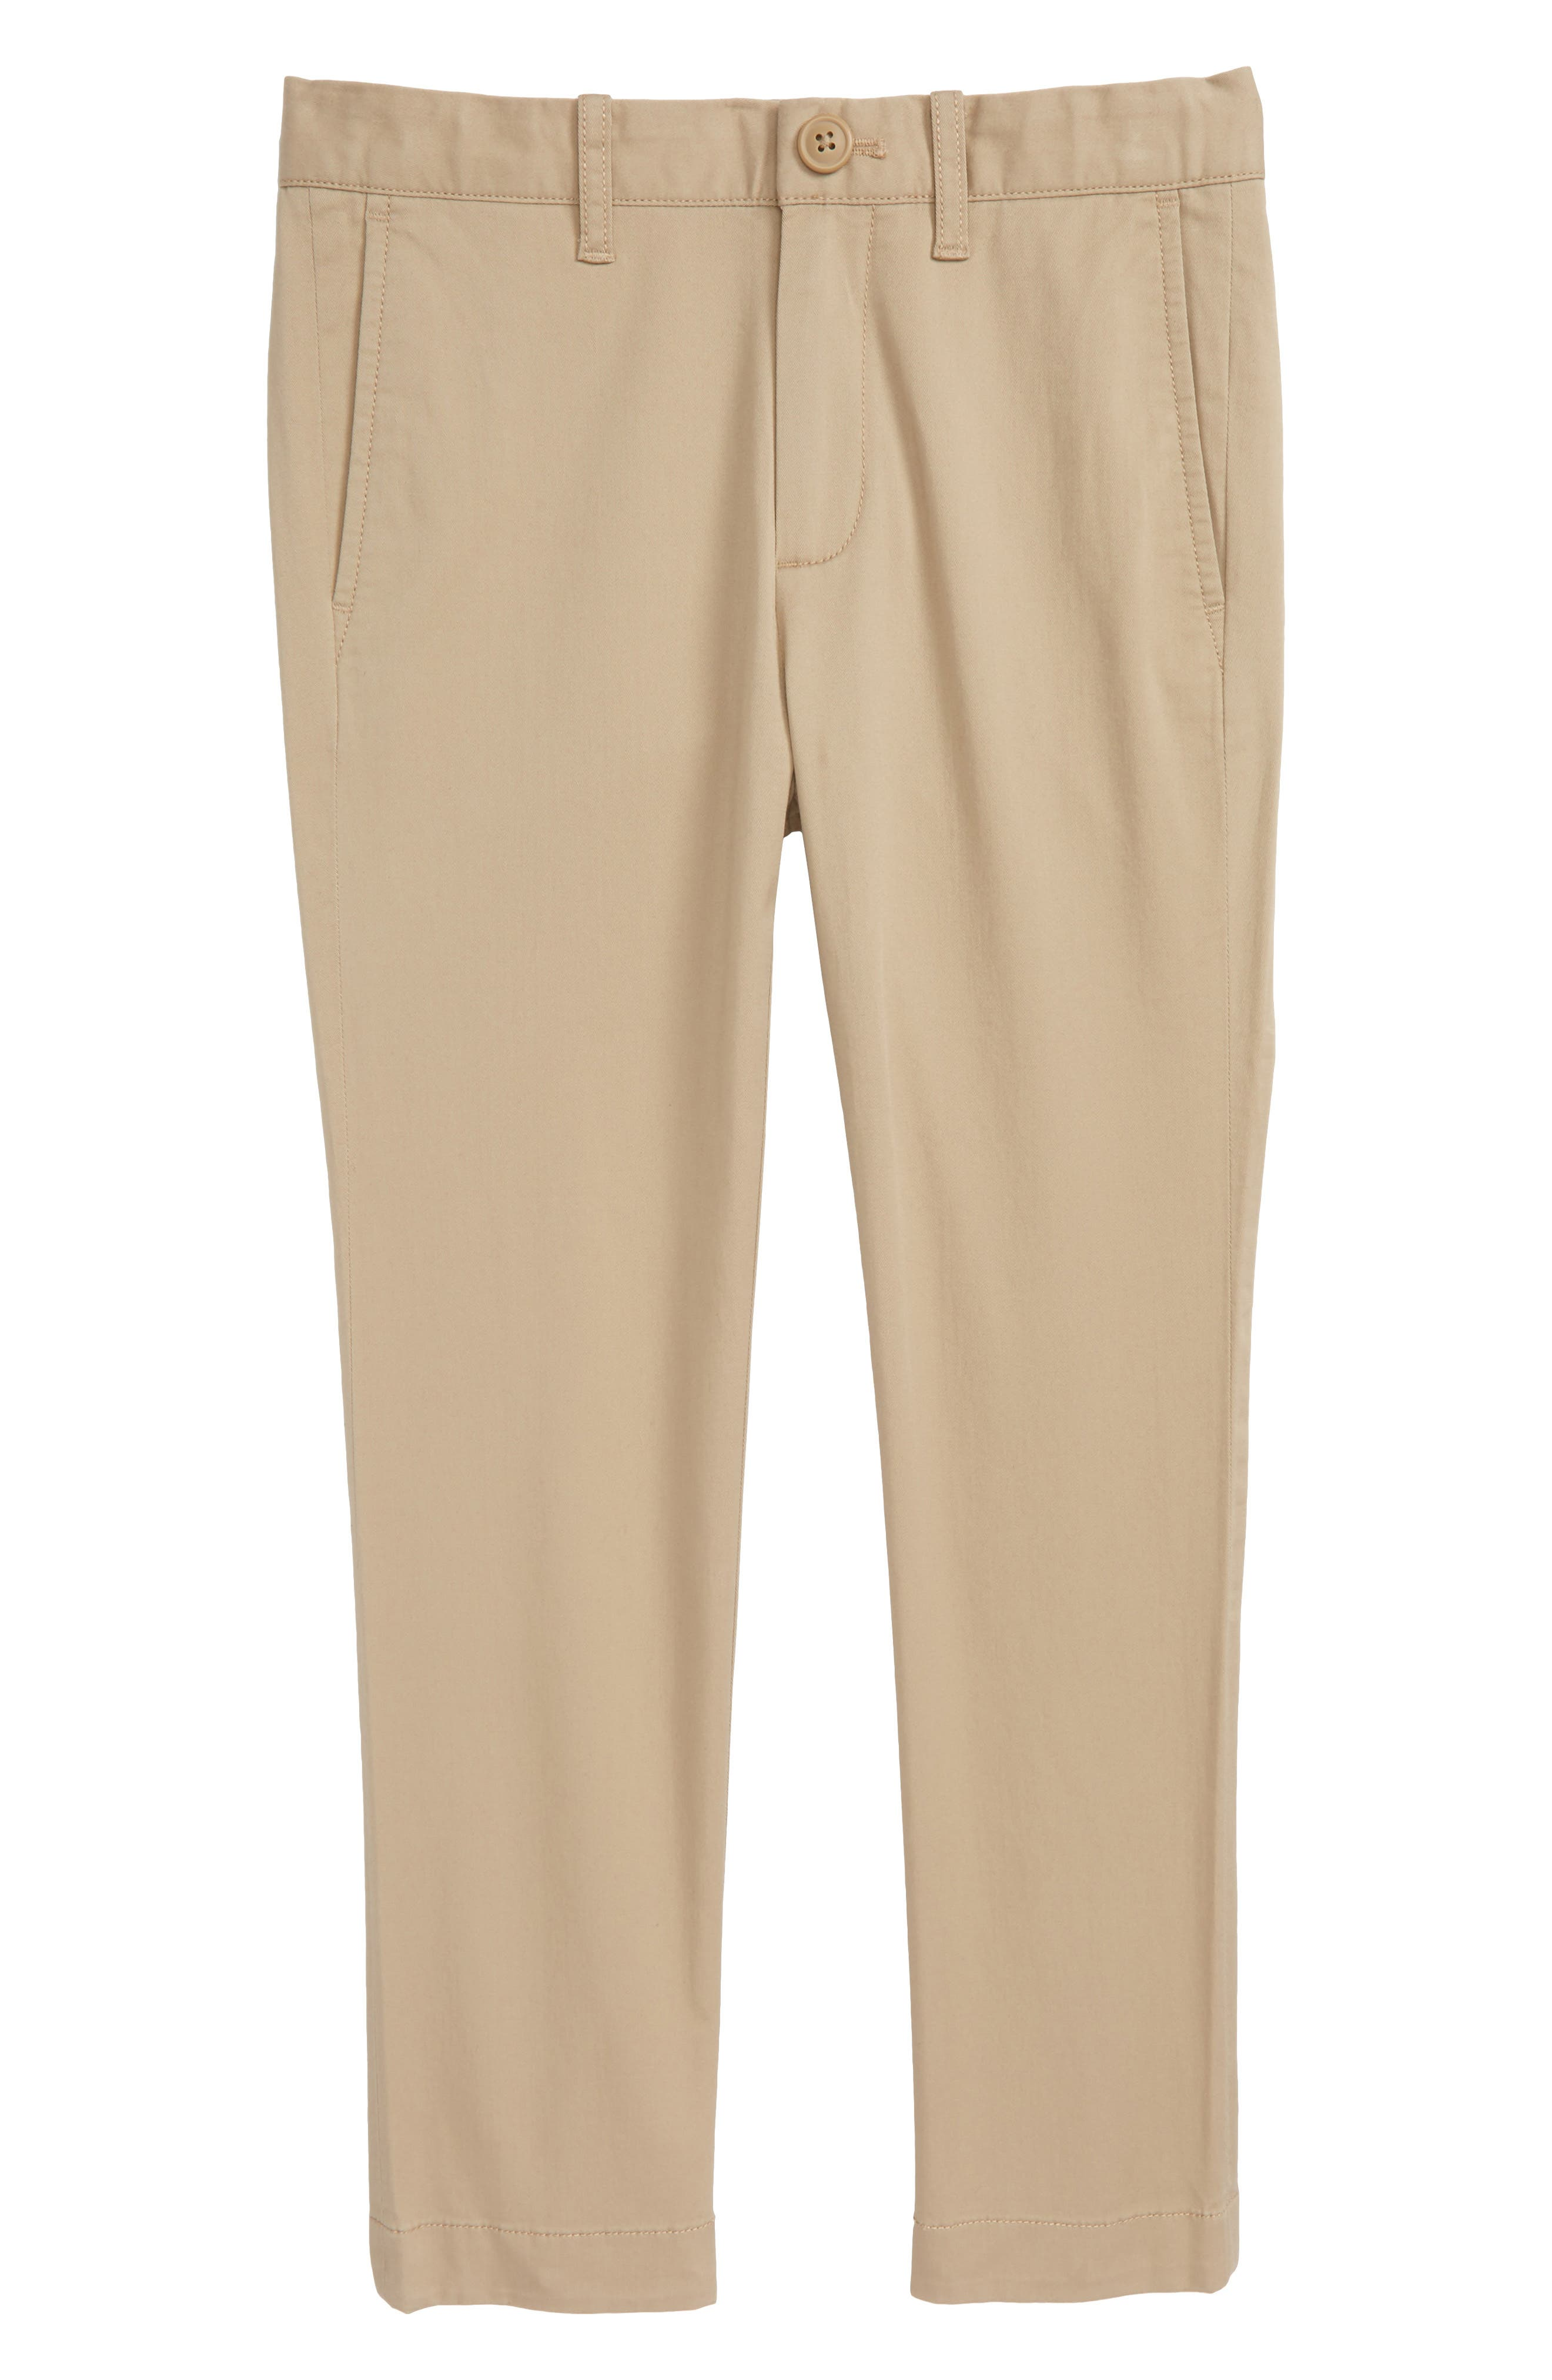 CREWCUTS BY J.CREW,                             Skinny Stretch Chino Pants,                             Main thumbnail 1, color,                             250